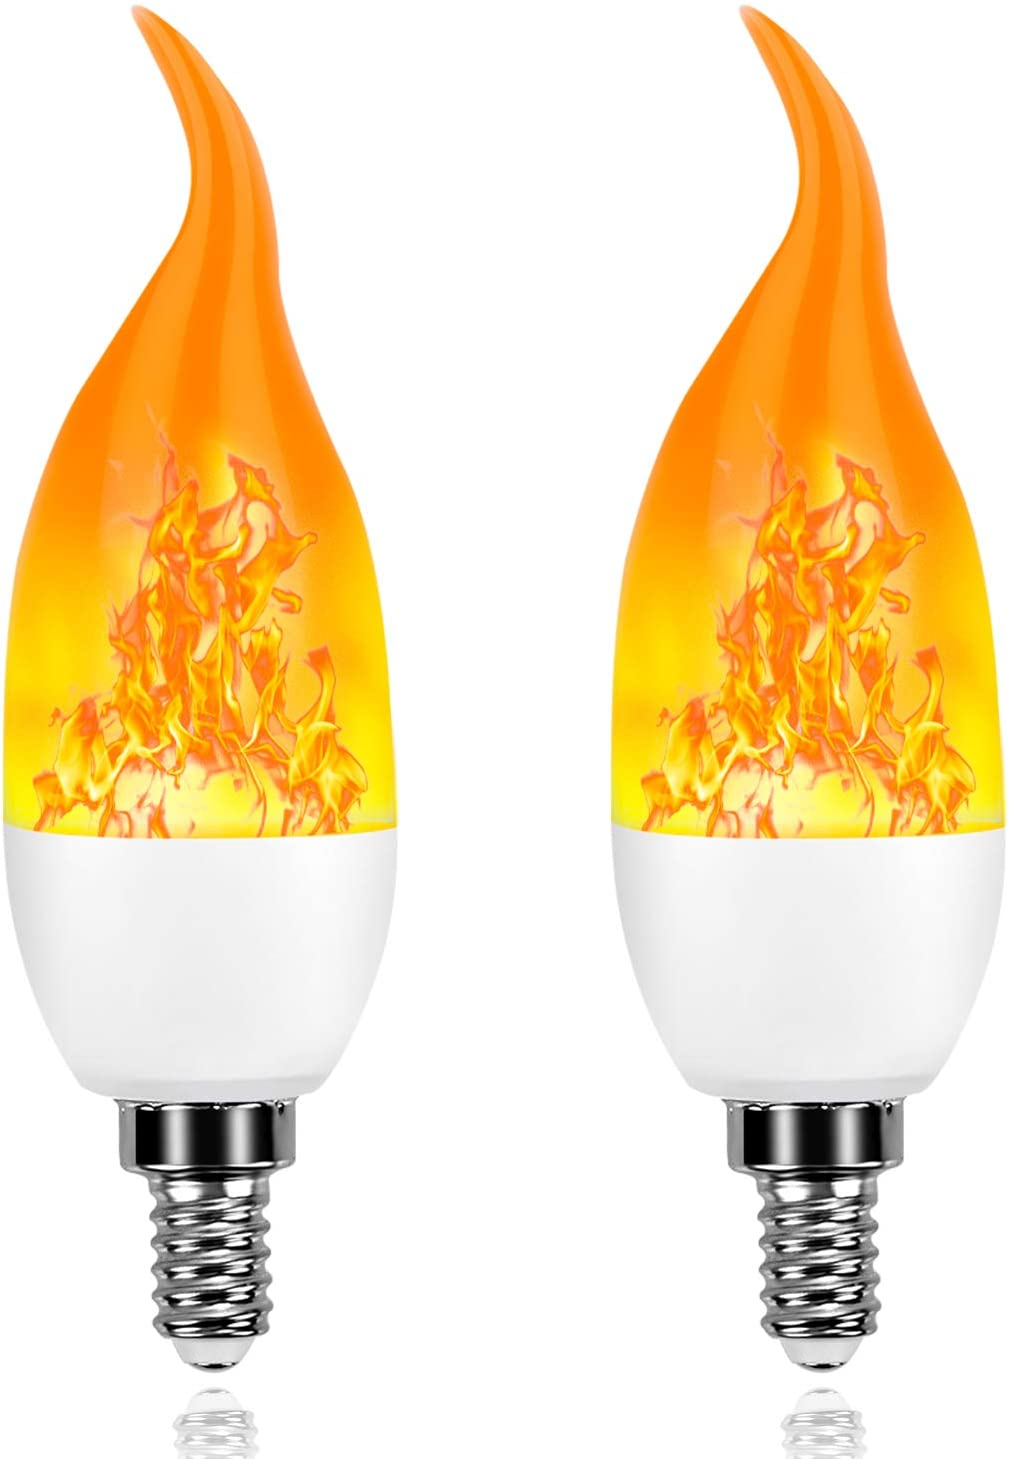 Artistic Home Xmas Decor Flame Light Bulbs - 2019 Upgrade 4 Modes Flame Effect Light Bulbs - E12 LED Flickering Candelabra Light Bulbs for Xmas/Indoor/Outdoor/Hotel/Party/Bar Decorations(2 Packs)